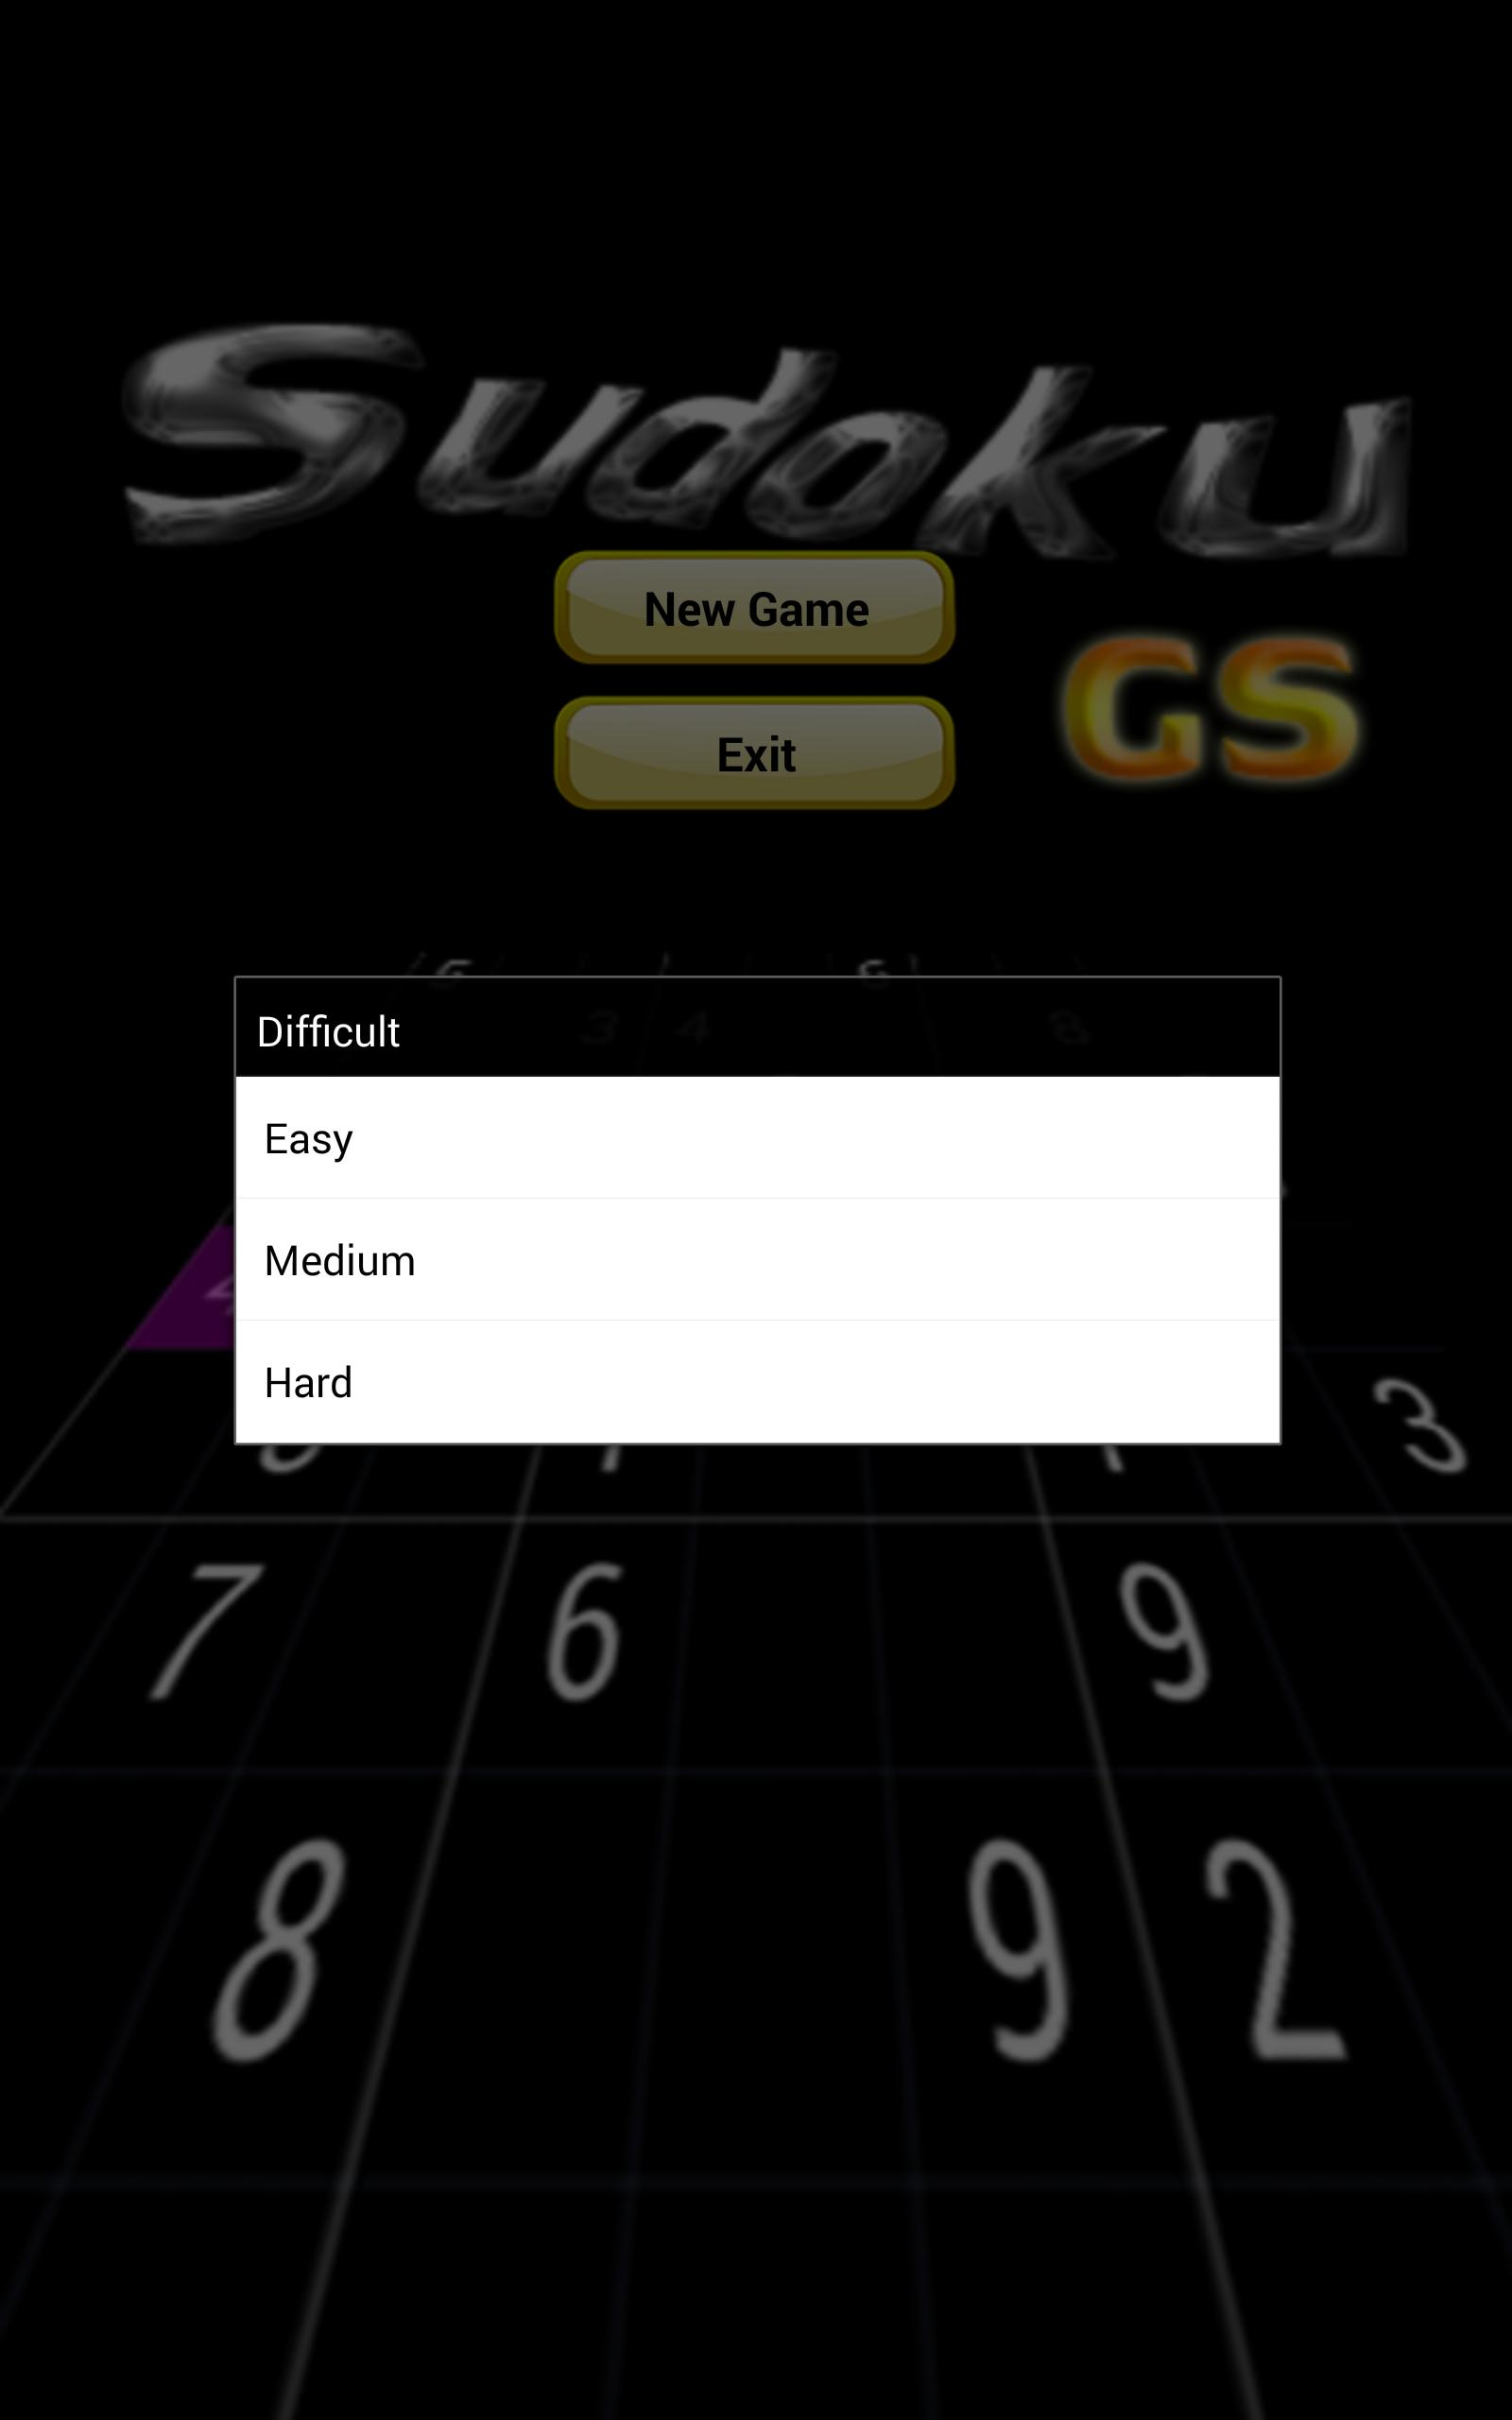 Sudoku Gs For Android - Apk Download tout Sudoku Gs